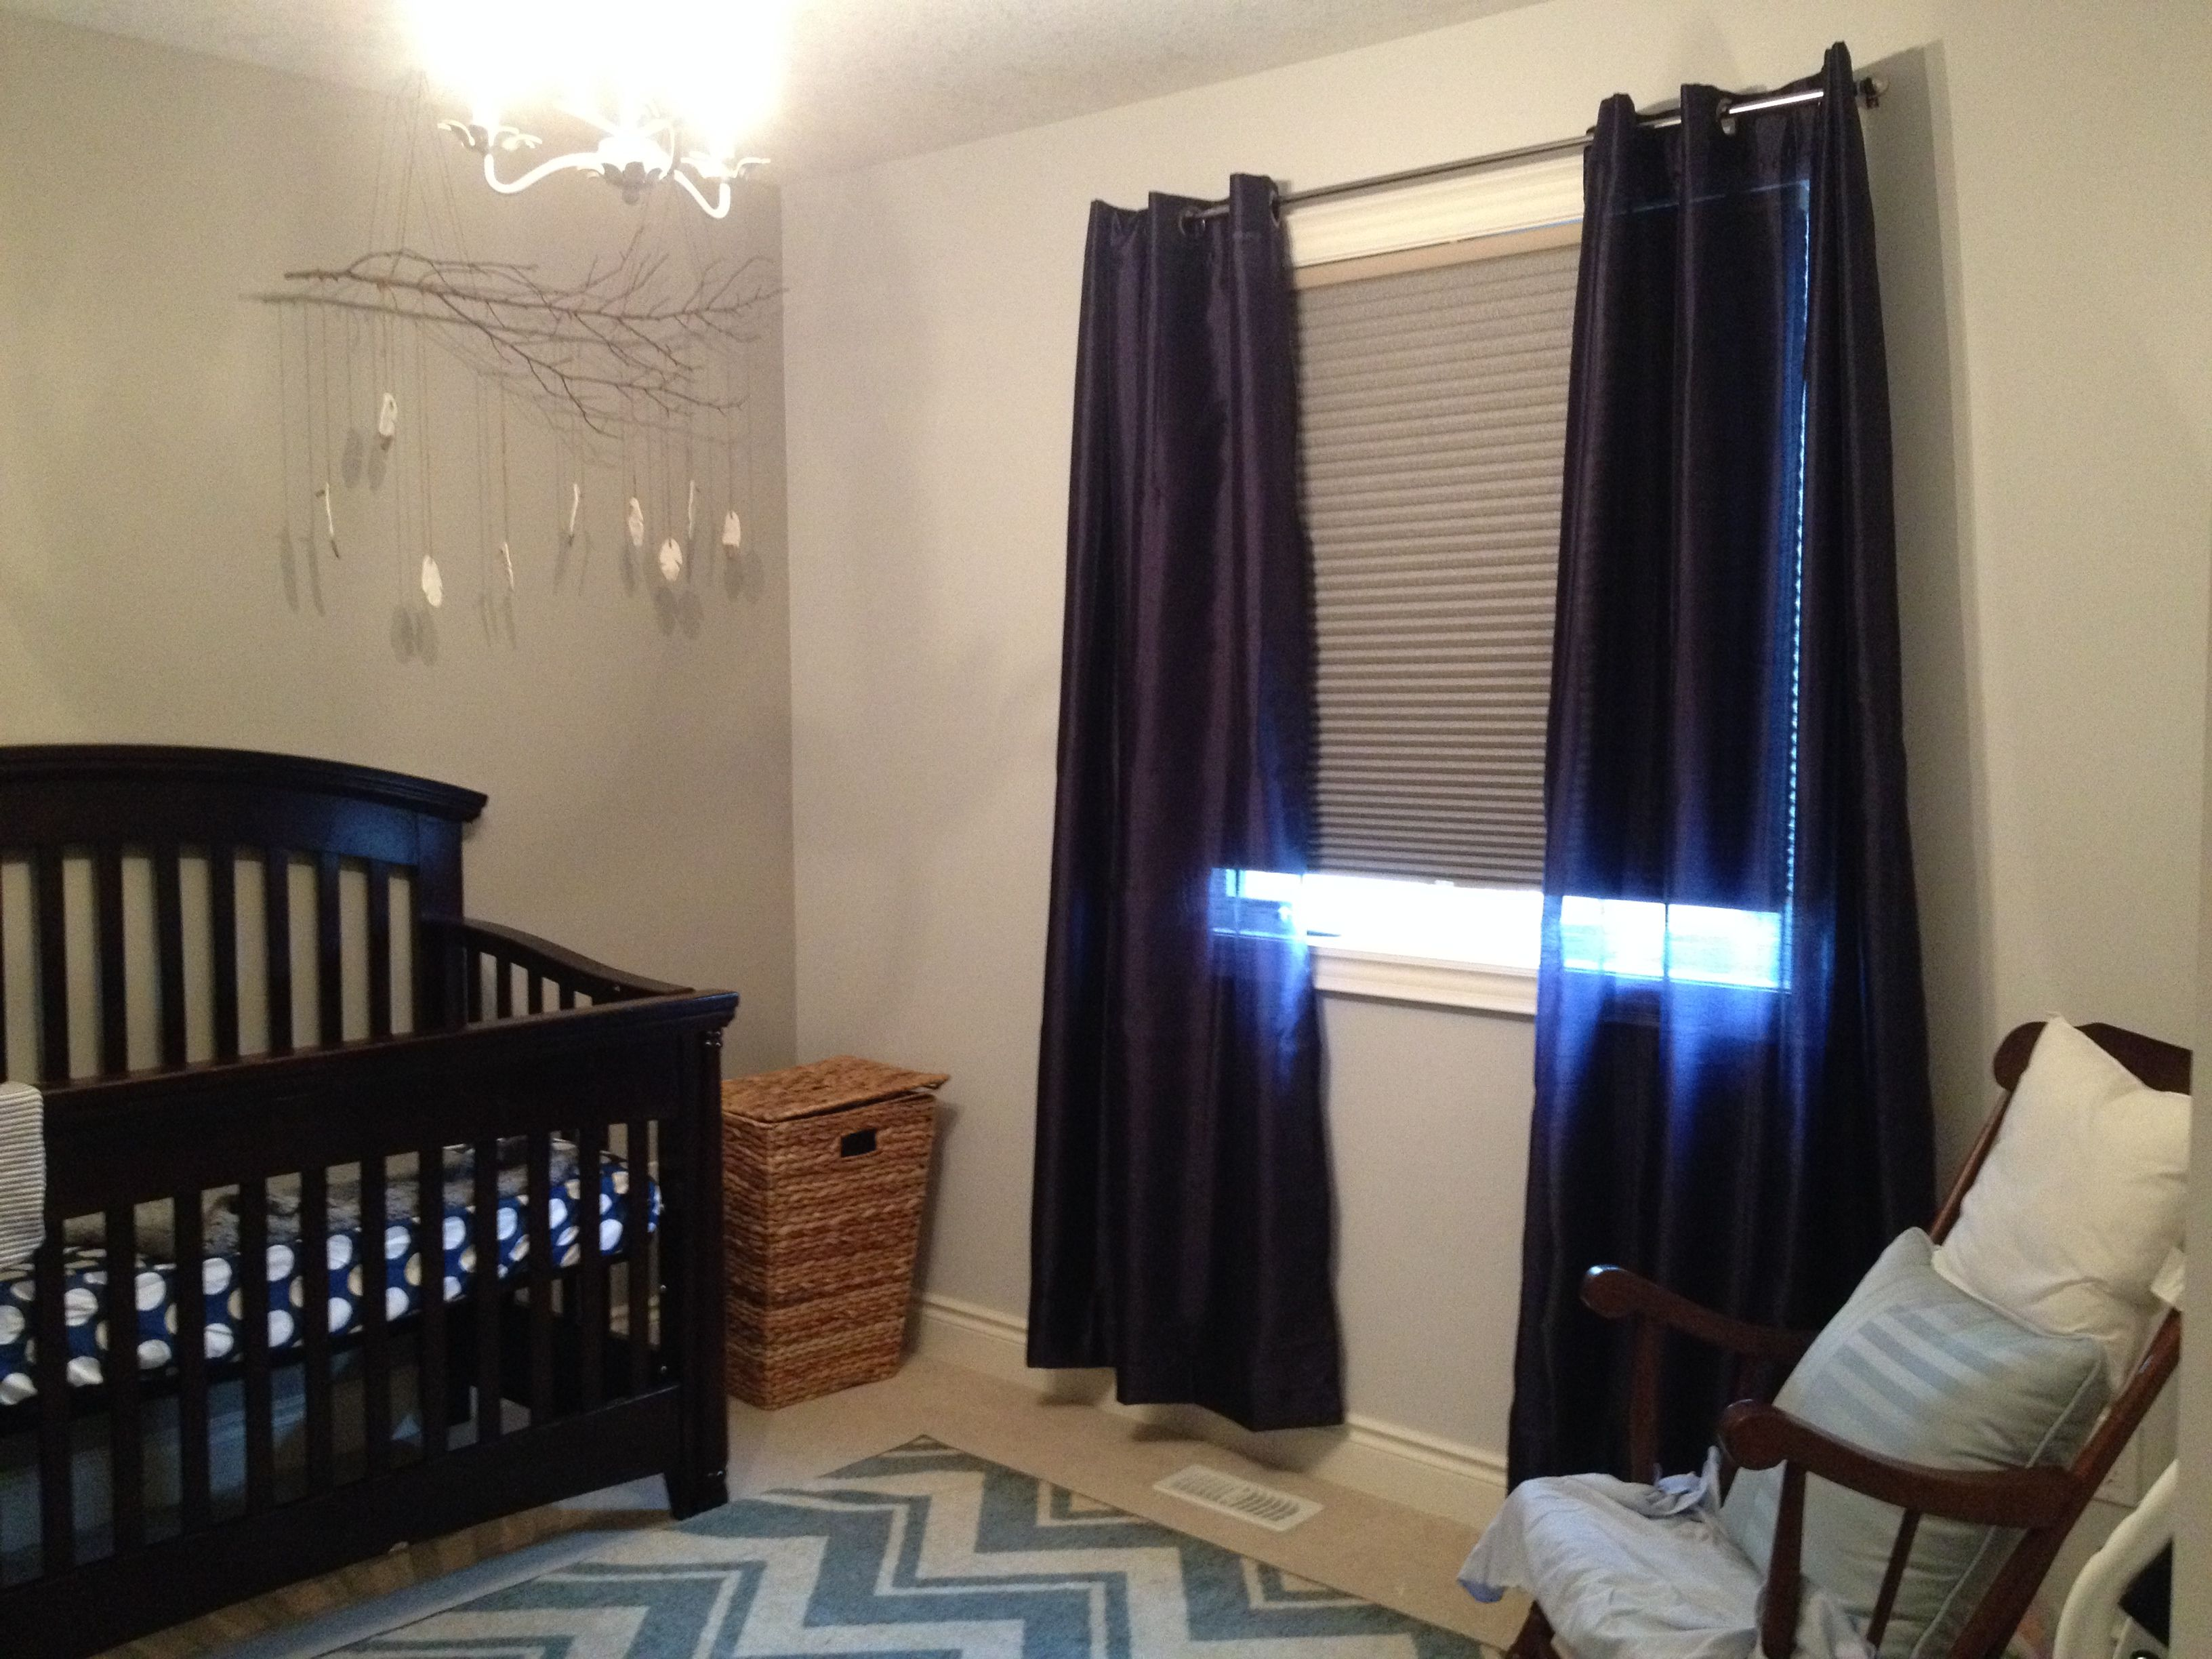 Nursery Blackout Shades Mean Extra Sleep For Mom Blinds Com Nursery Curtains Boy Boys Room Curtains Curtains Uk